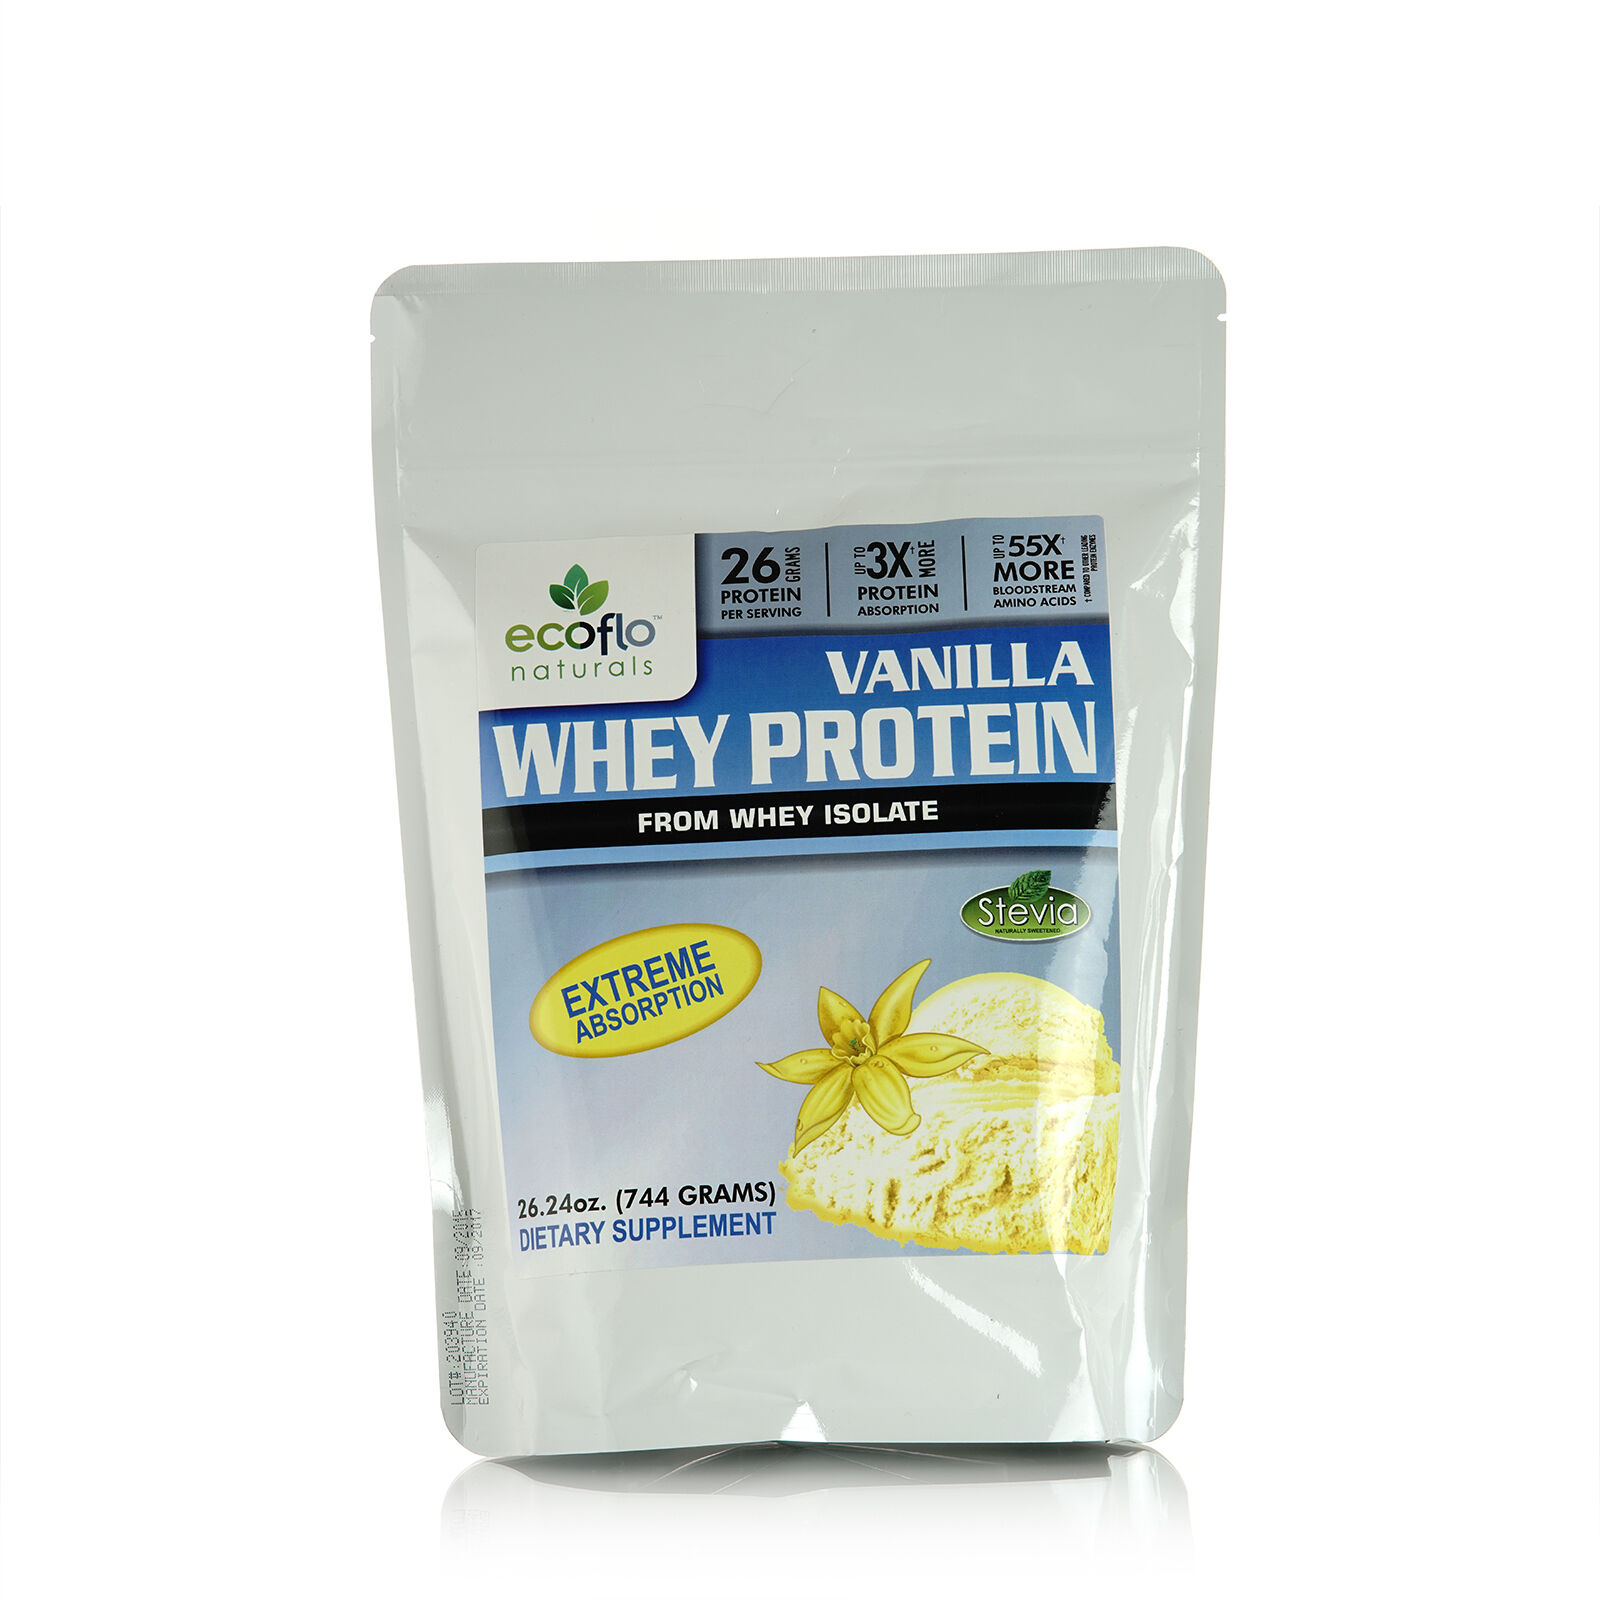 Ecoflo Naturals - Whey Protein Vanilla – Isolate 26.24 oz Whey Isolate – Sugar Free 68ee0f